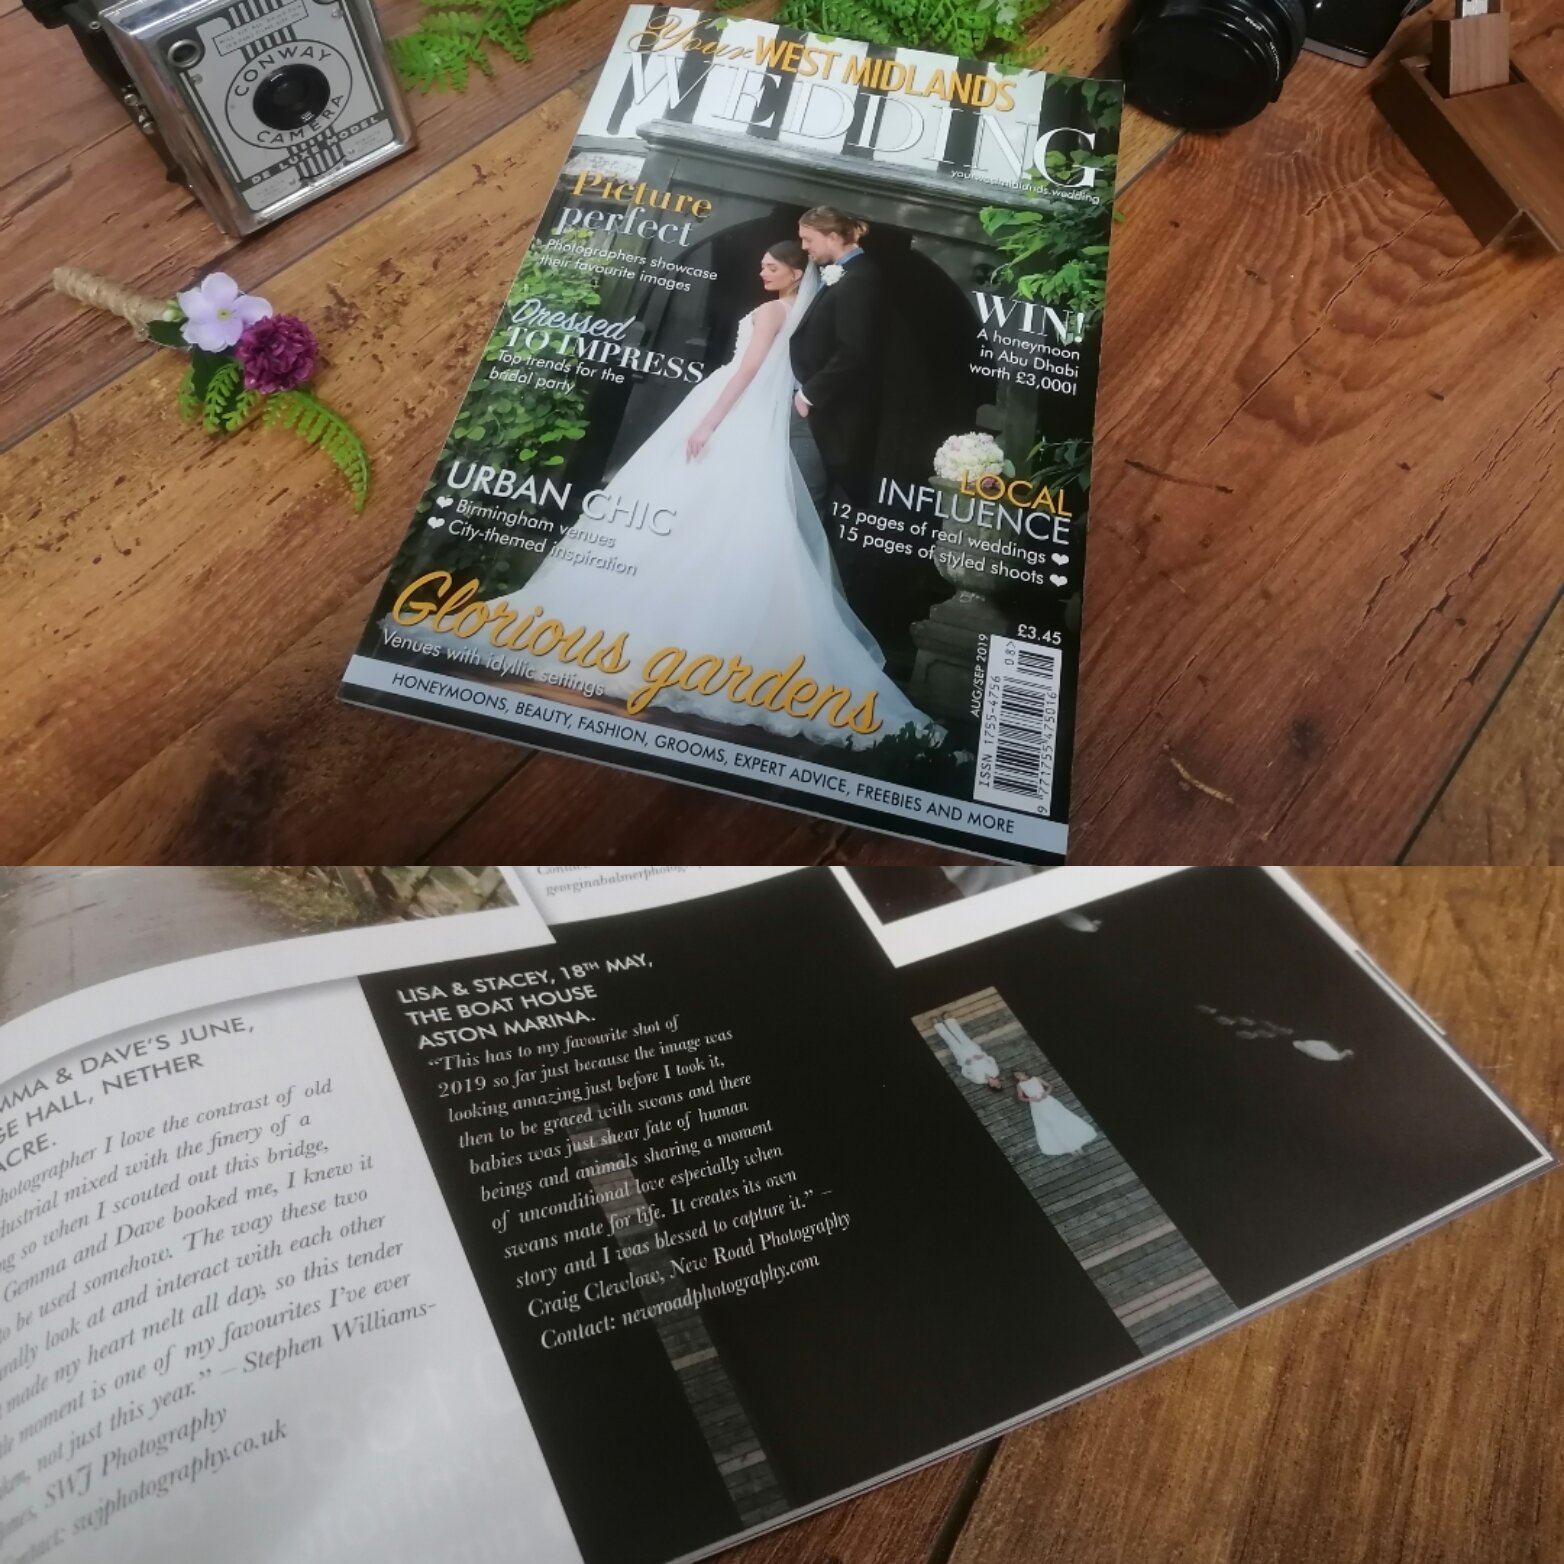 Your west midlands wedding magazine August/September issue 2019, best of 2019 feature photo